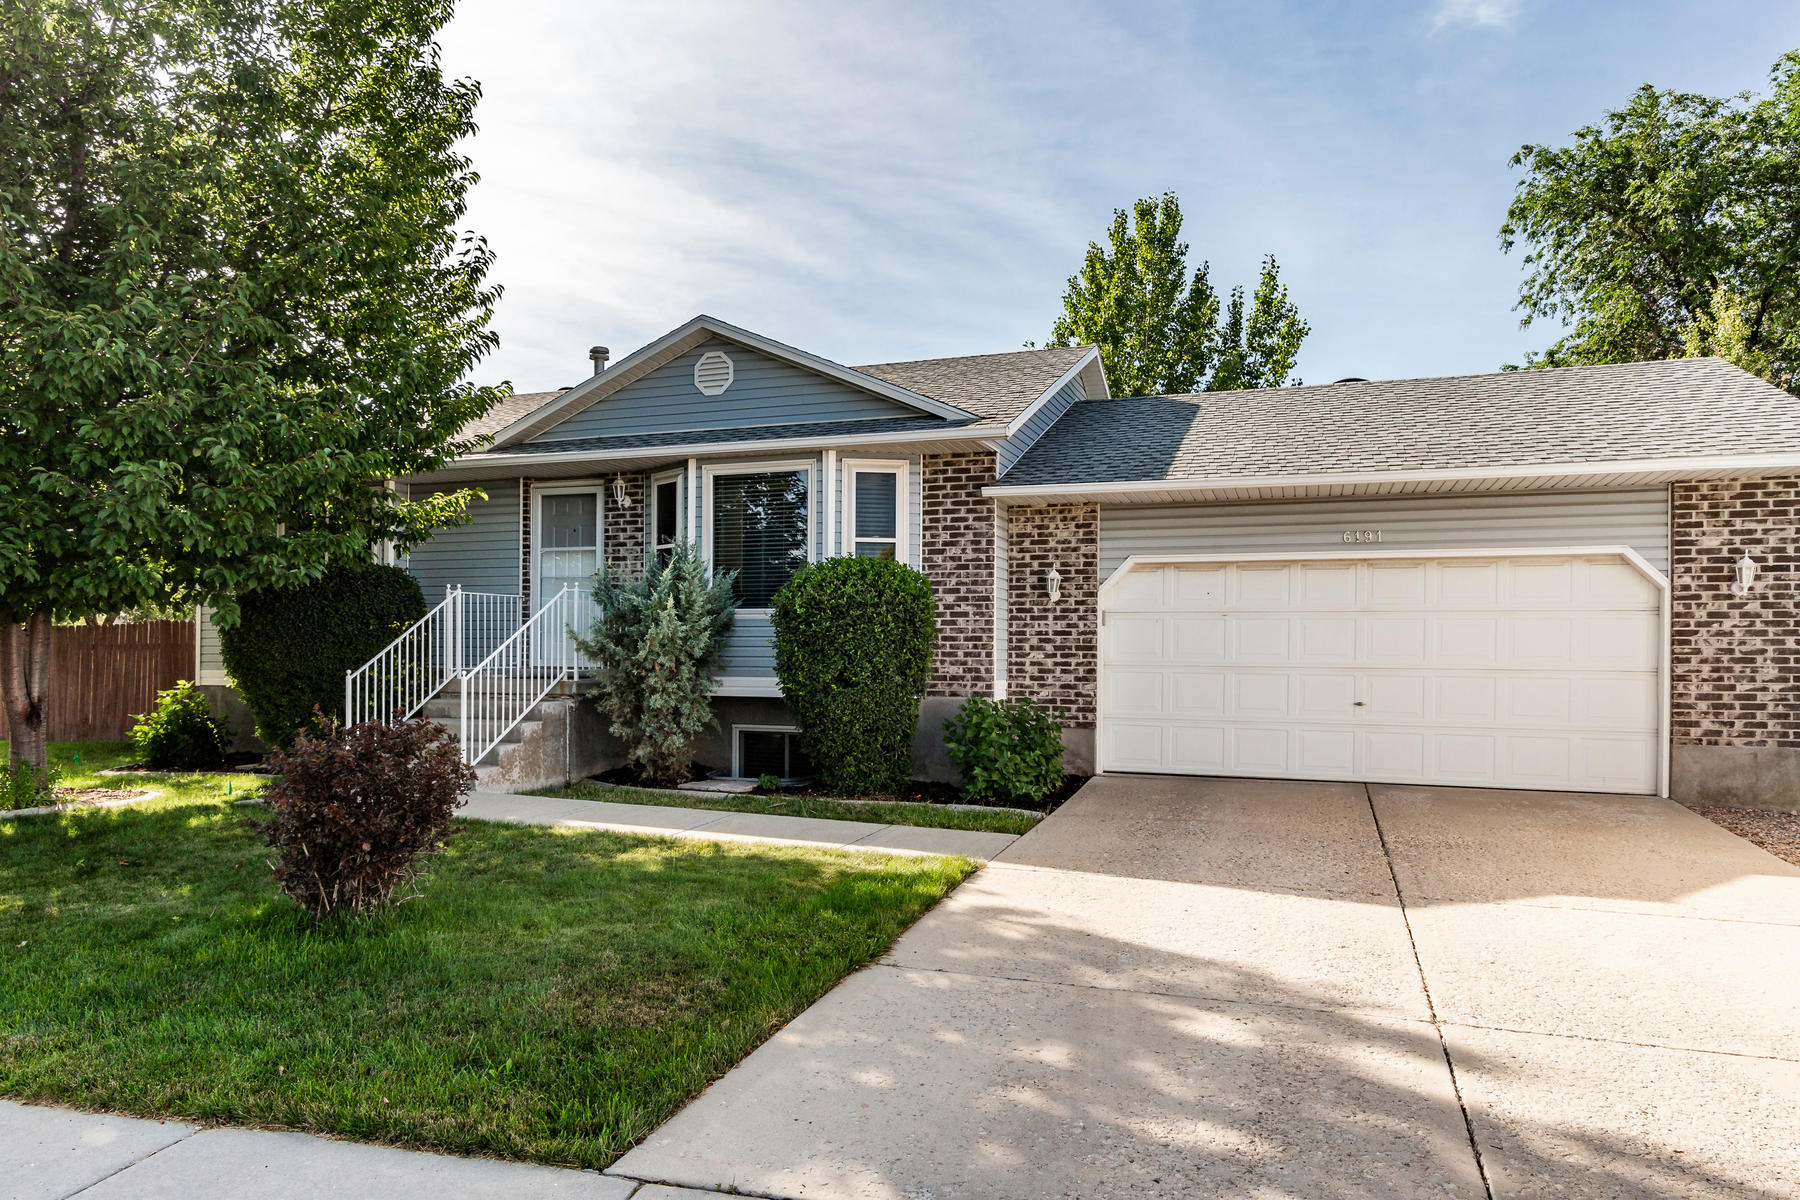 Single Family Homes for Active at Lightly Lived In Home Located In A Quiet Neighborhood. 6191 W Pepper Pond Ln West Valley City, Utah 84128 United States